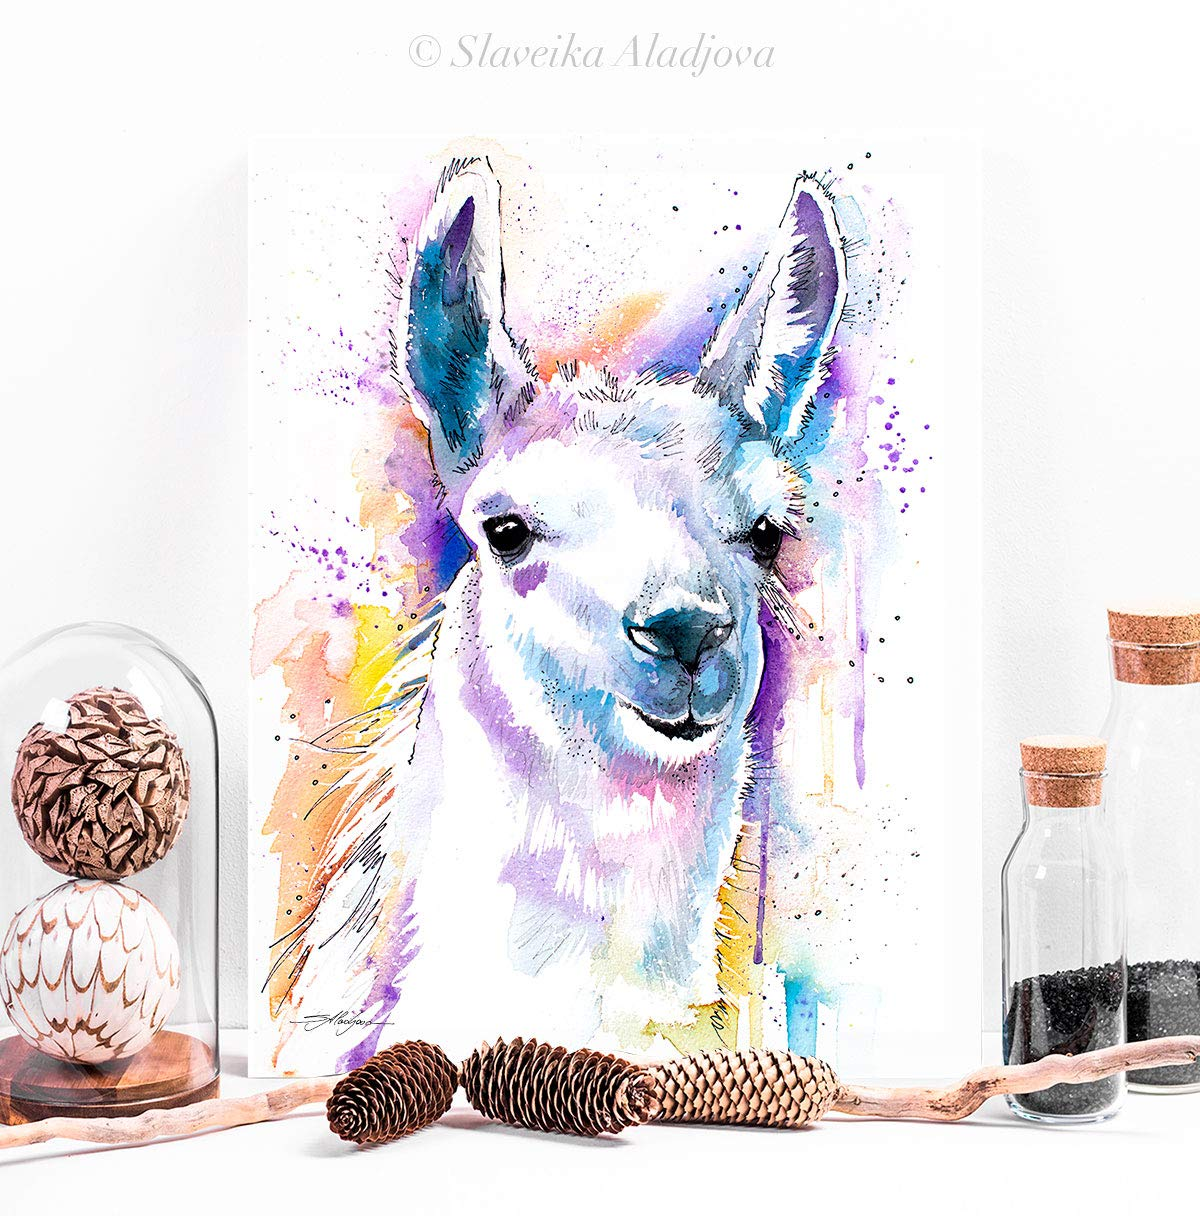 Amazon Com Llama Painting Print Art Trendy Watercolor Illustration Portrait Colorful Wall Decor Home Animal Handmade